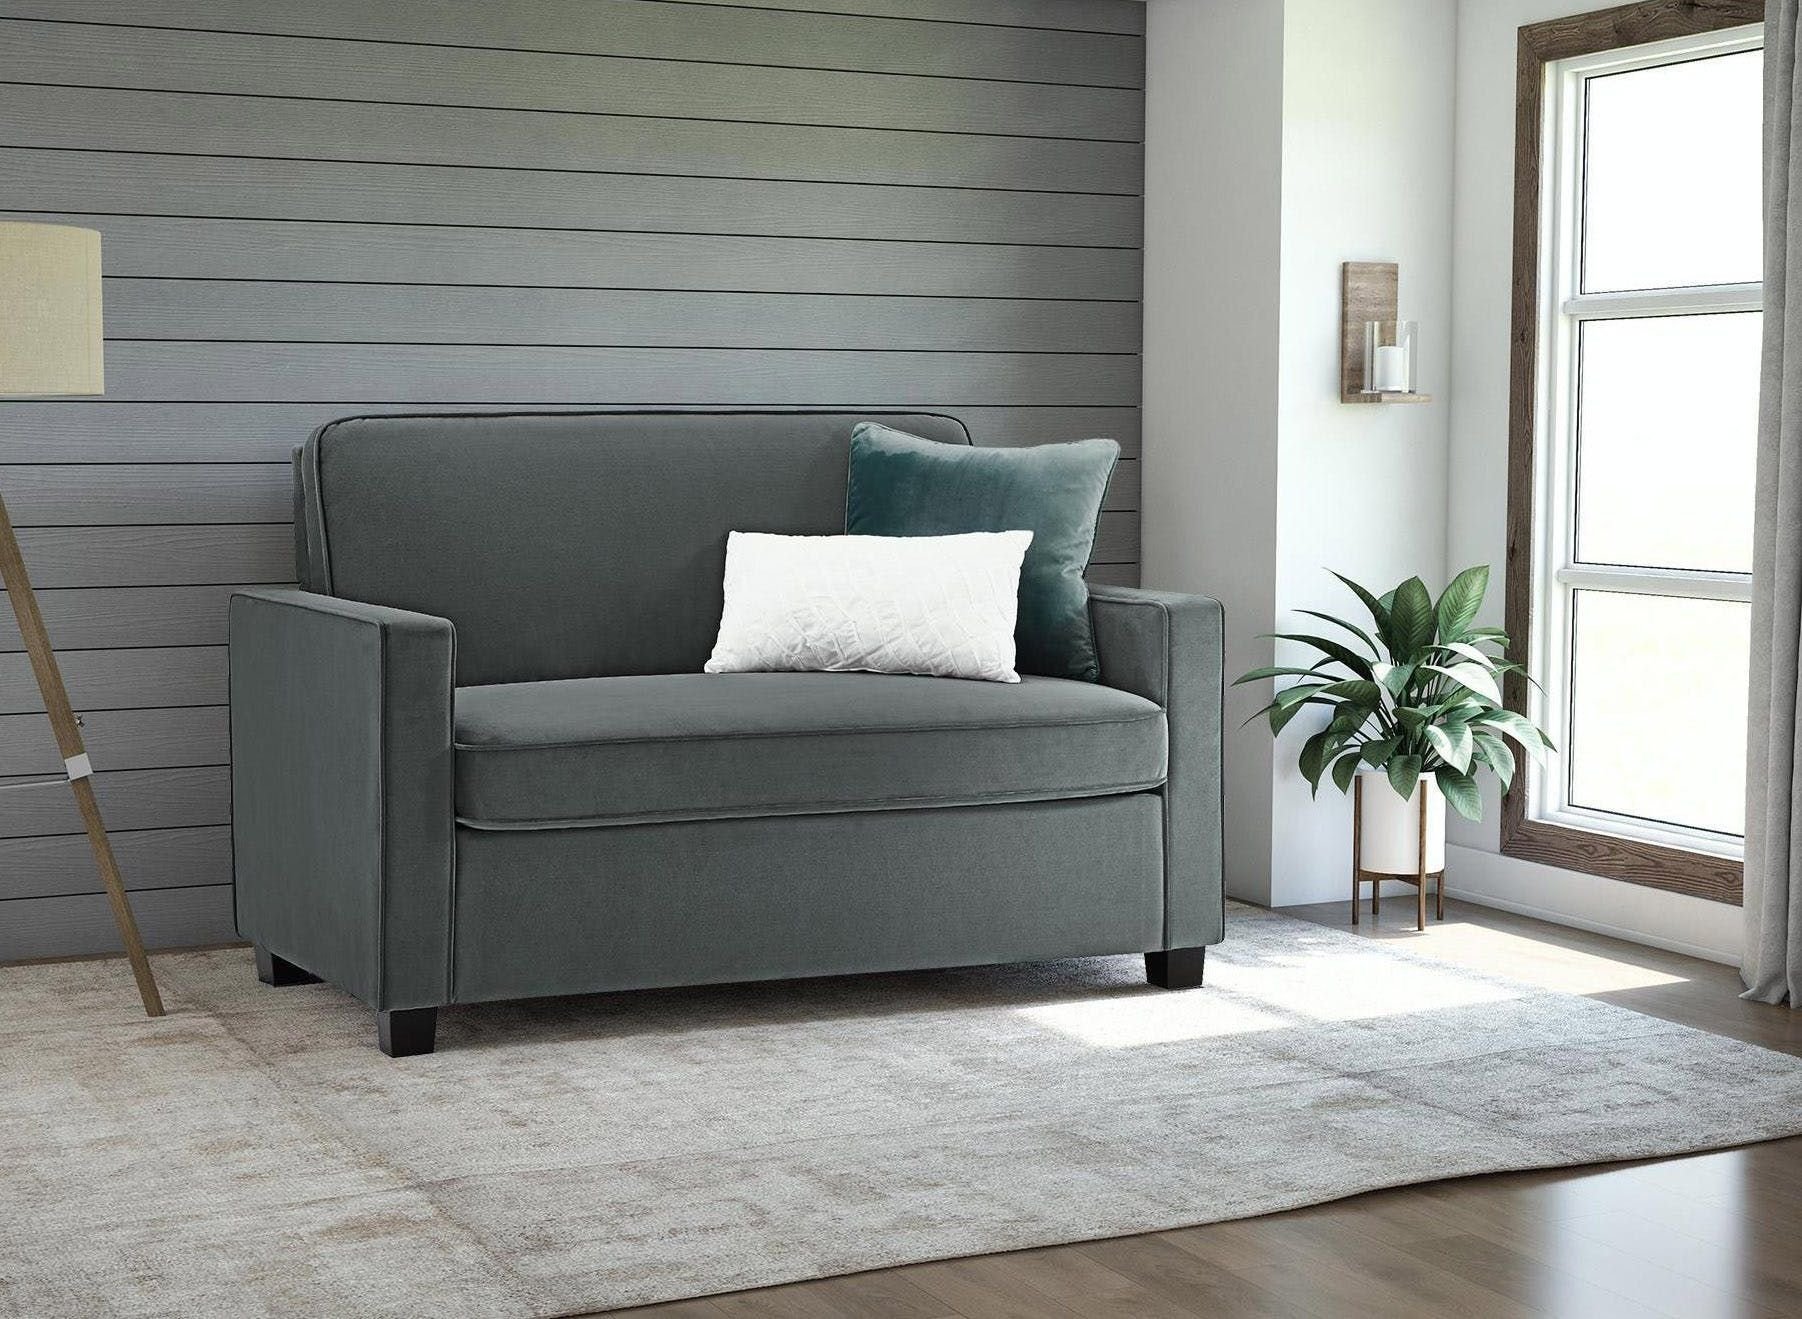 sofasandmore leather sofa review the best sleeper sofas for small spaces